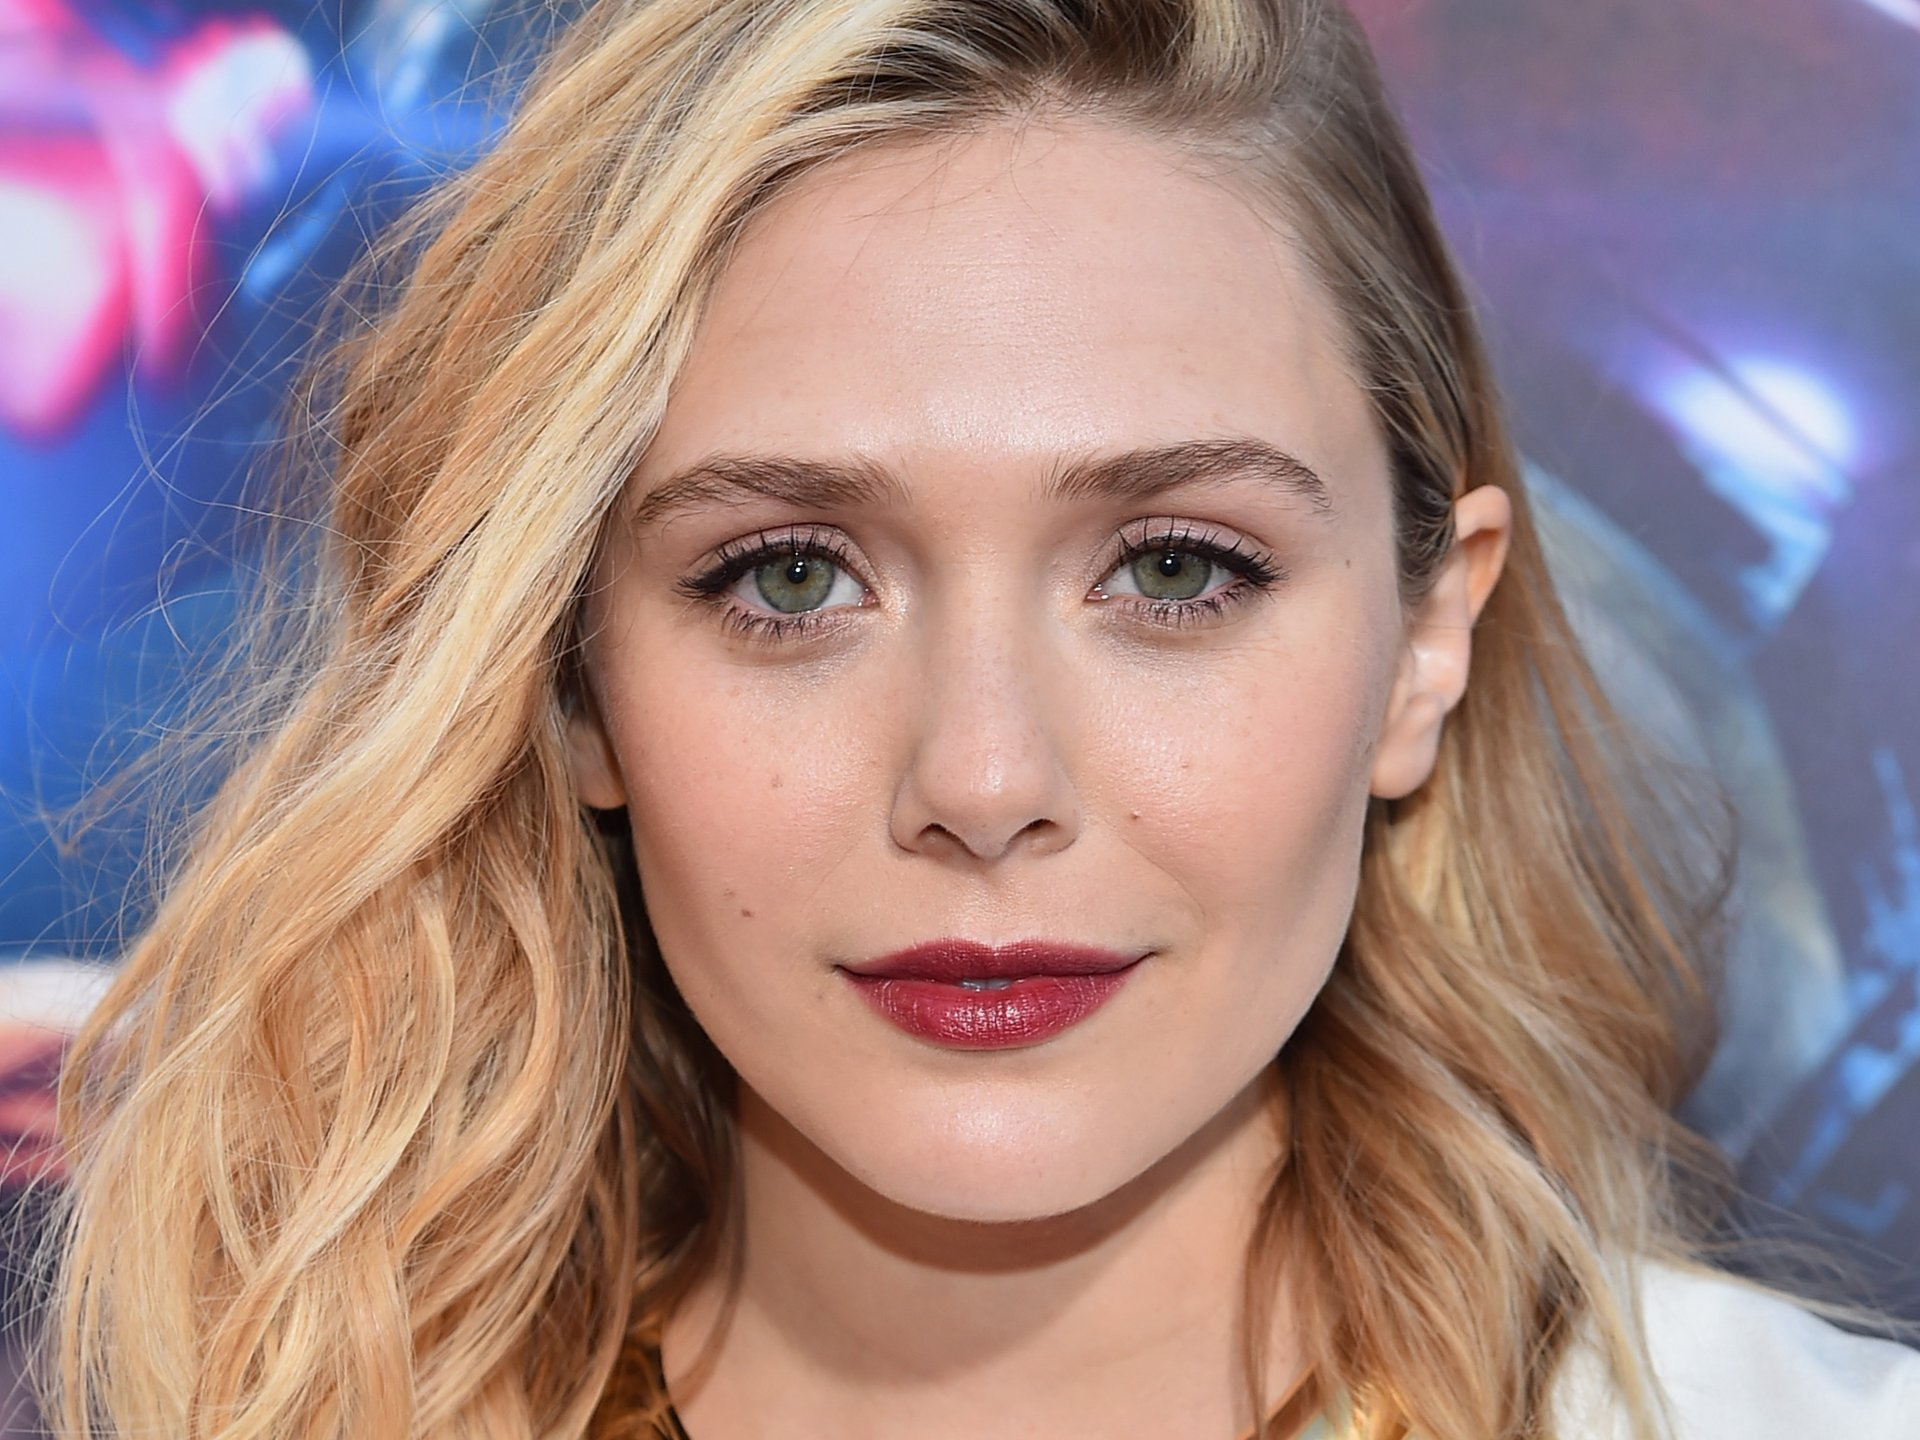 Elizabeth Olsen slams 'Avengers' costume: Im the only one who has cleavage